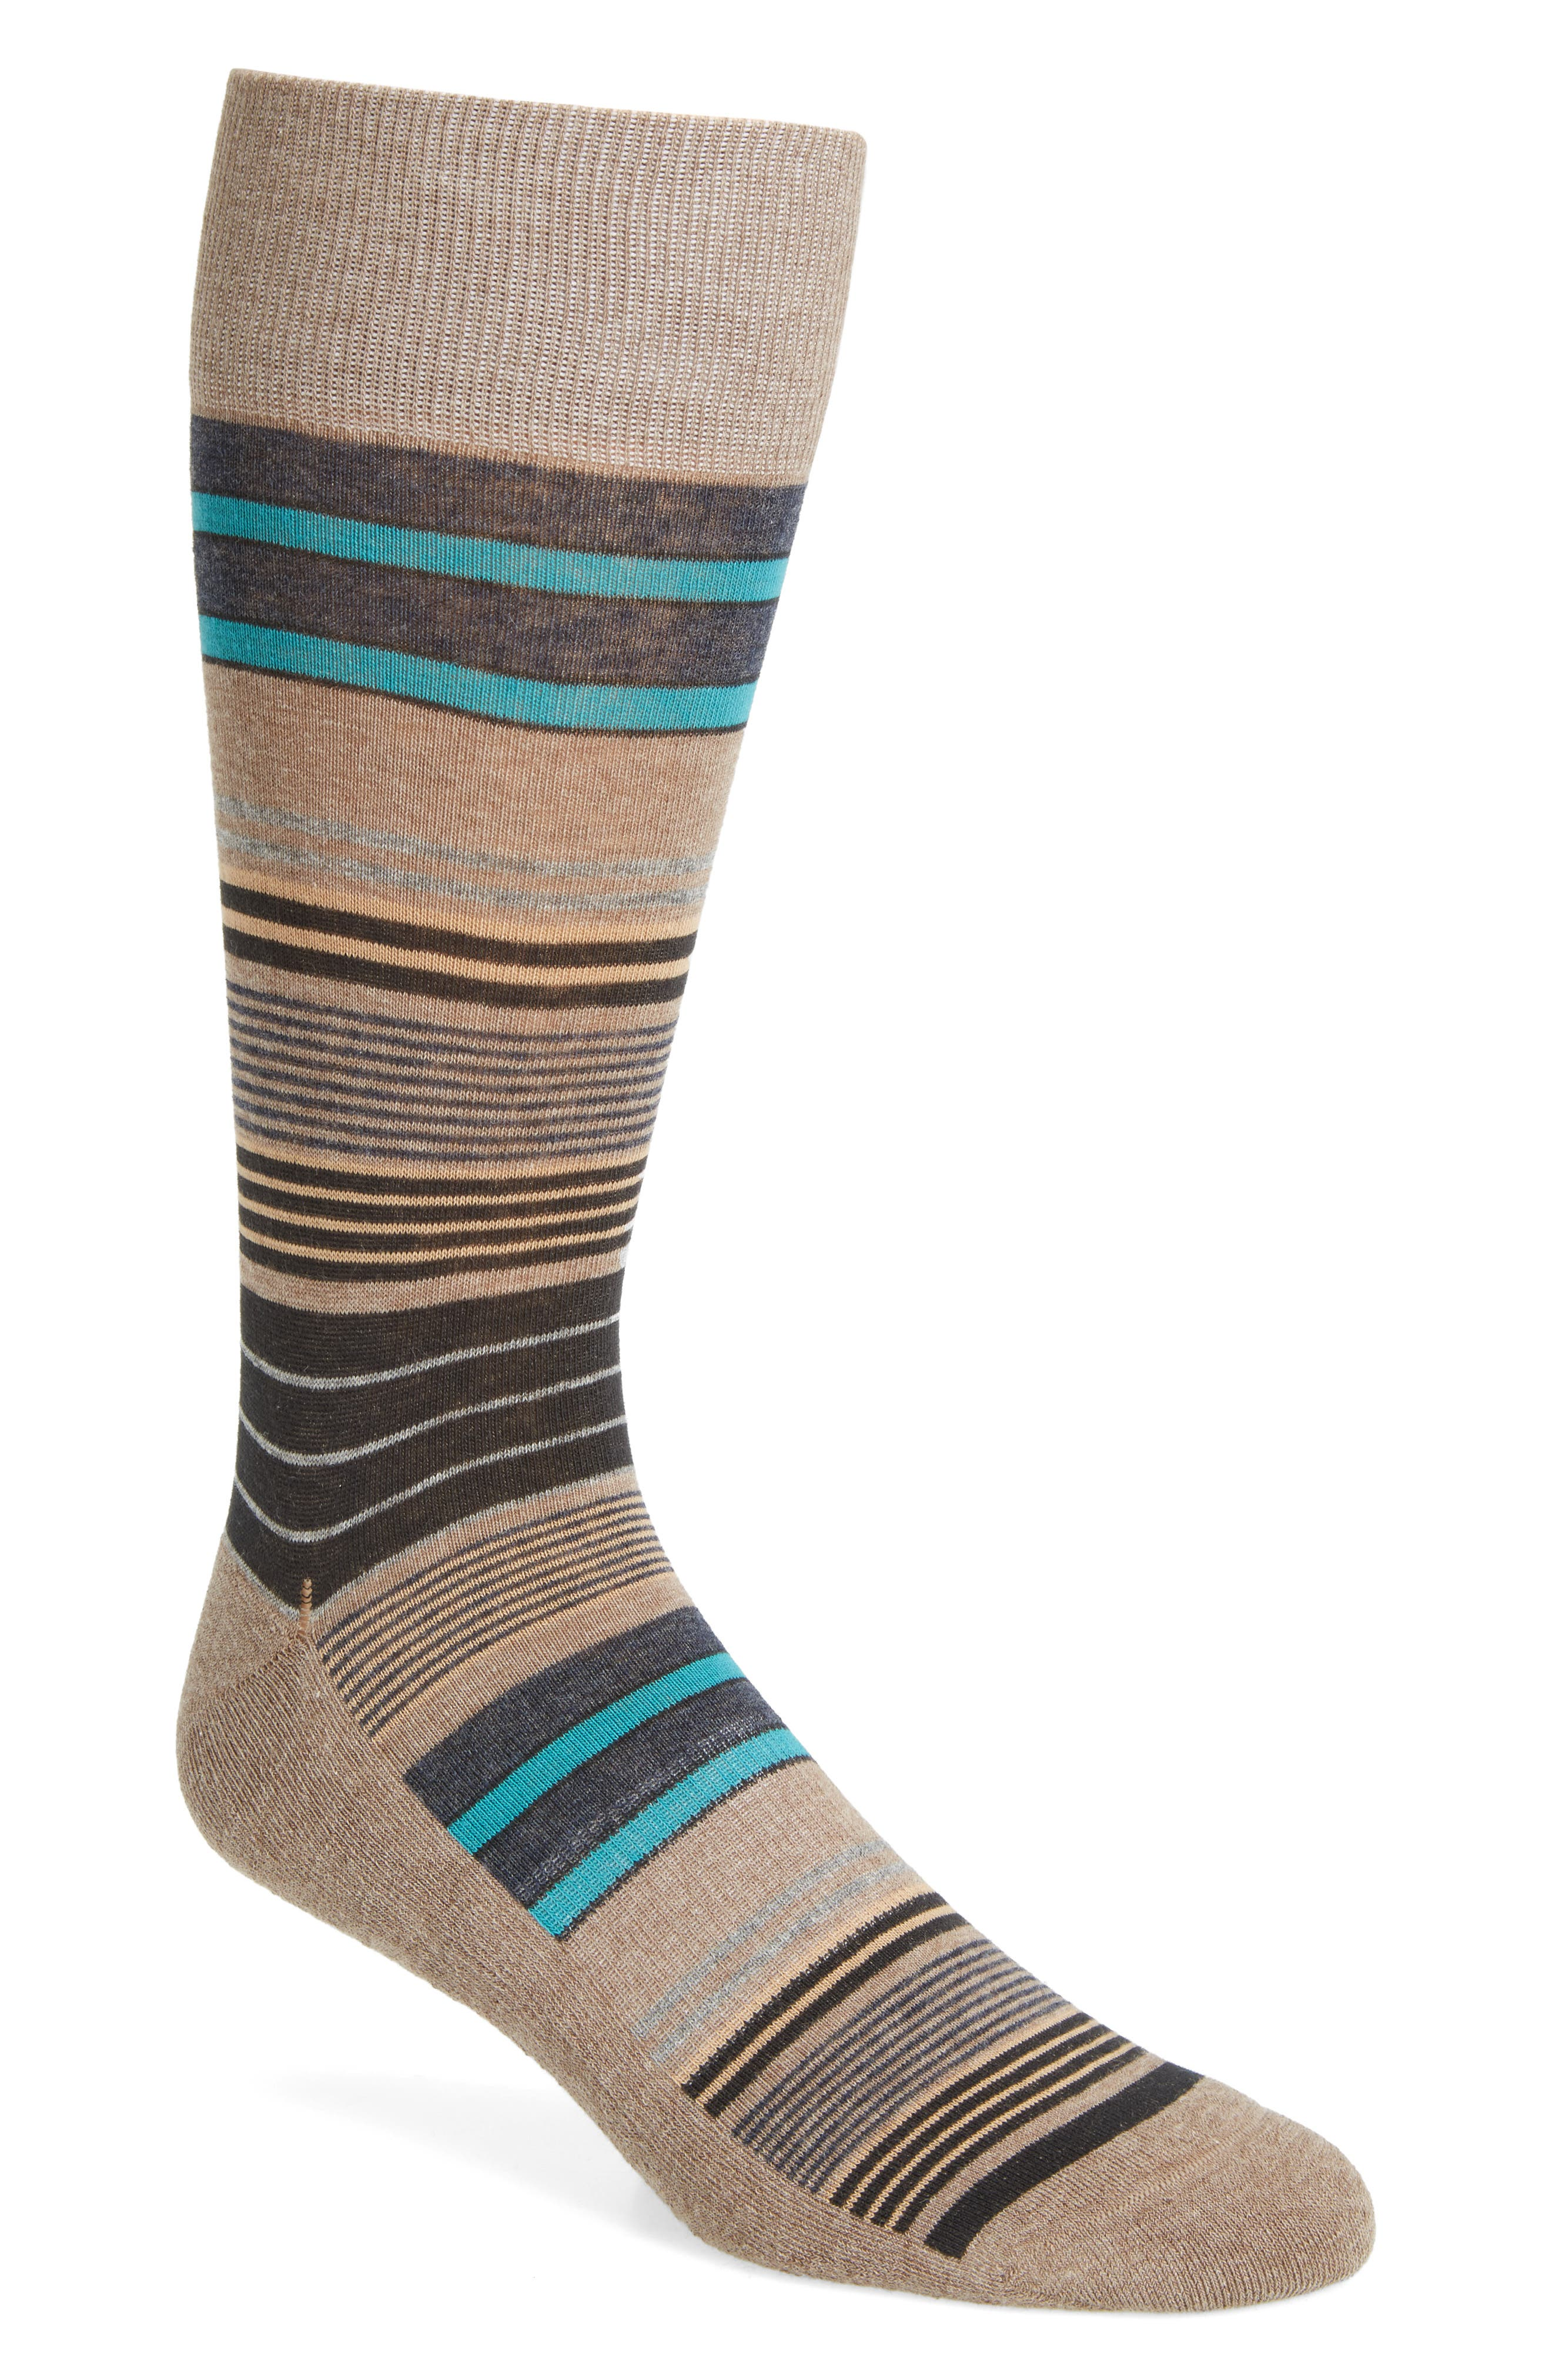 Nordstrom Men's Shop Random Stripe Socks